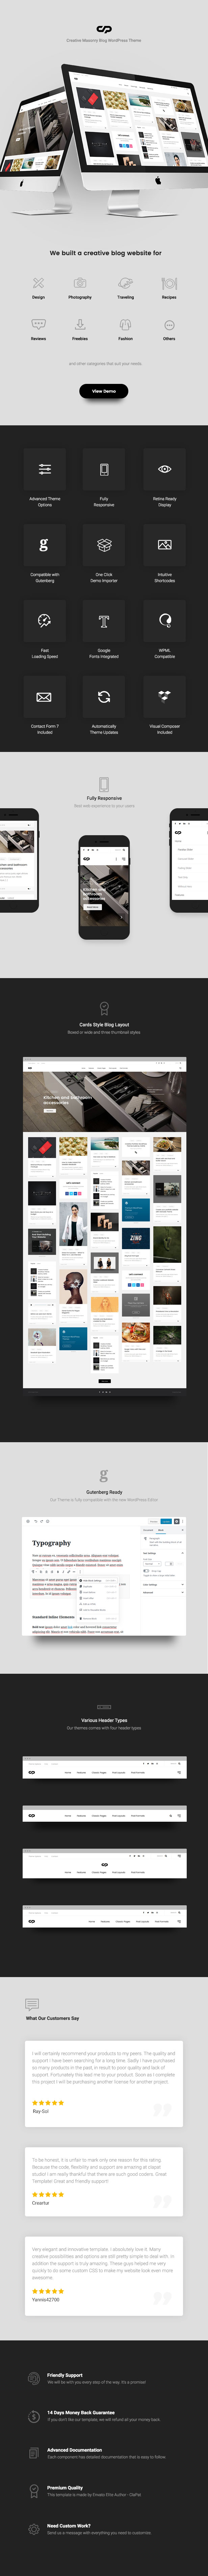 https://themeforest.net/item/clapat-creative-masonry-blog-wordpress-theme/22988029?ref=dexignzone